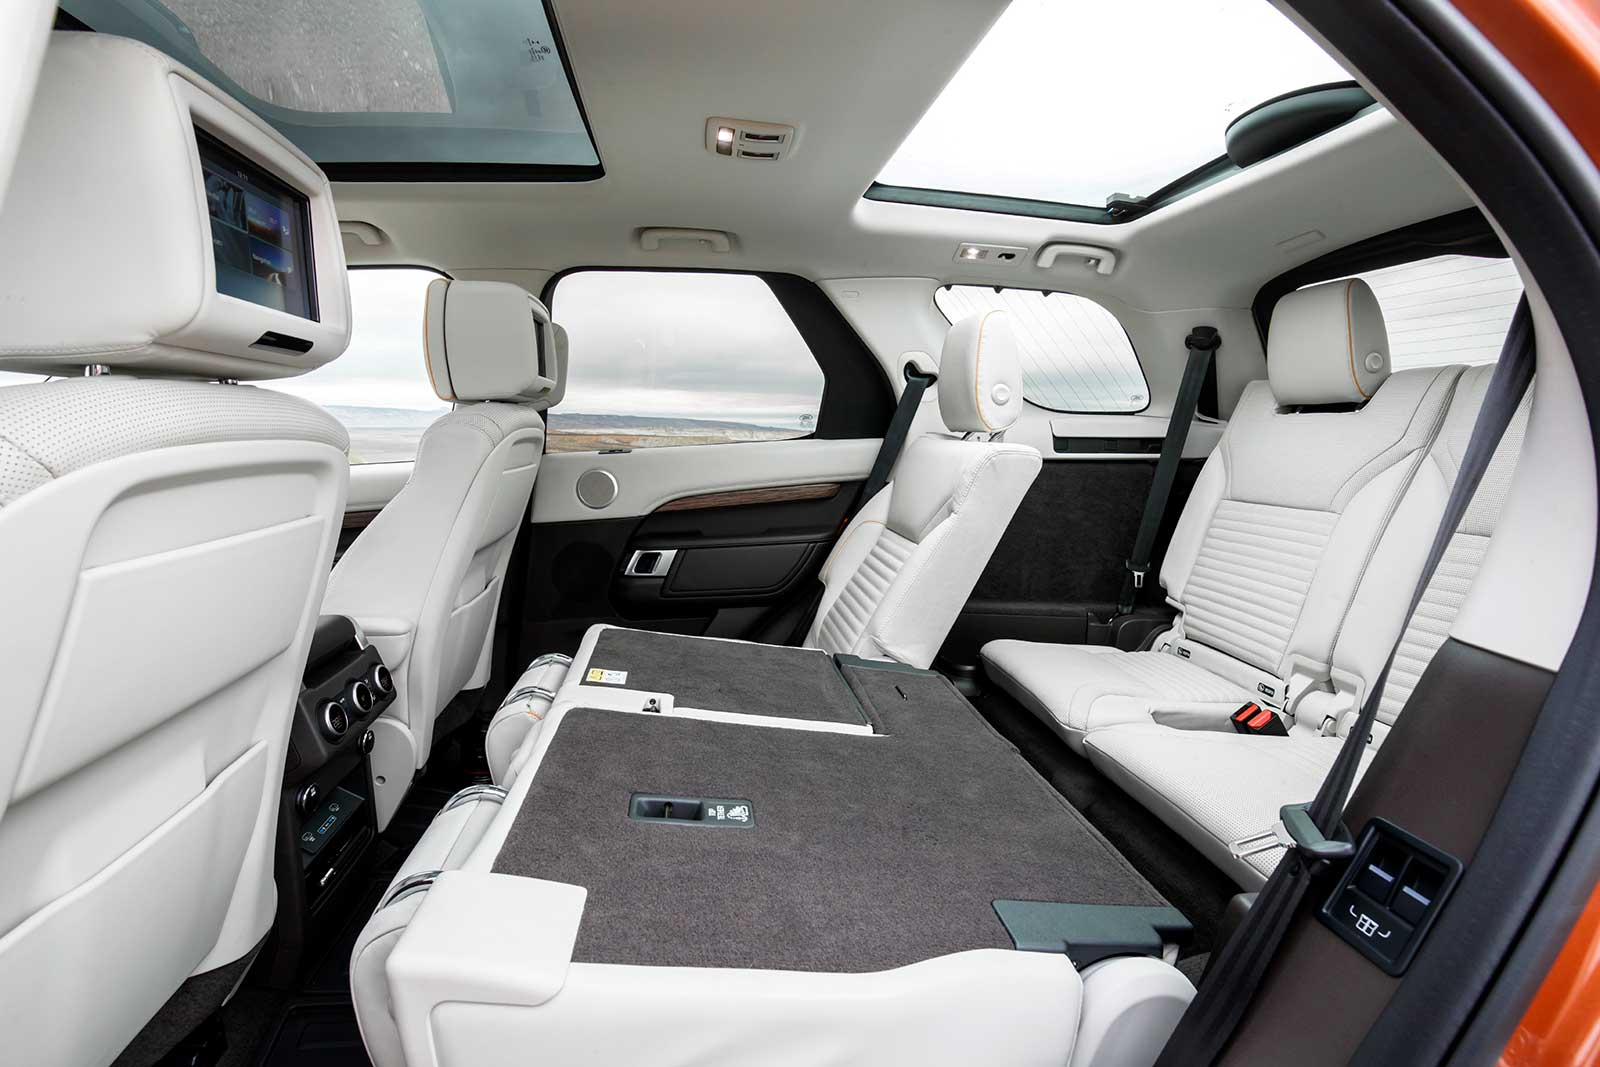 Lovely ... 2017 Land Rover Discovery Diesel Interior 06 ... Nice Design